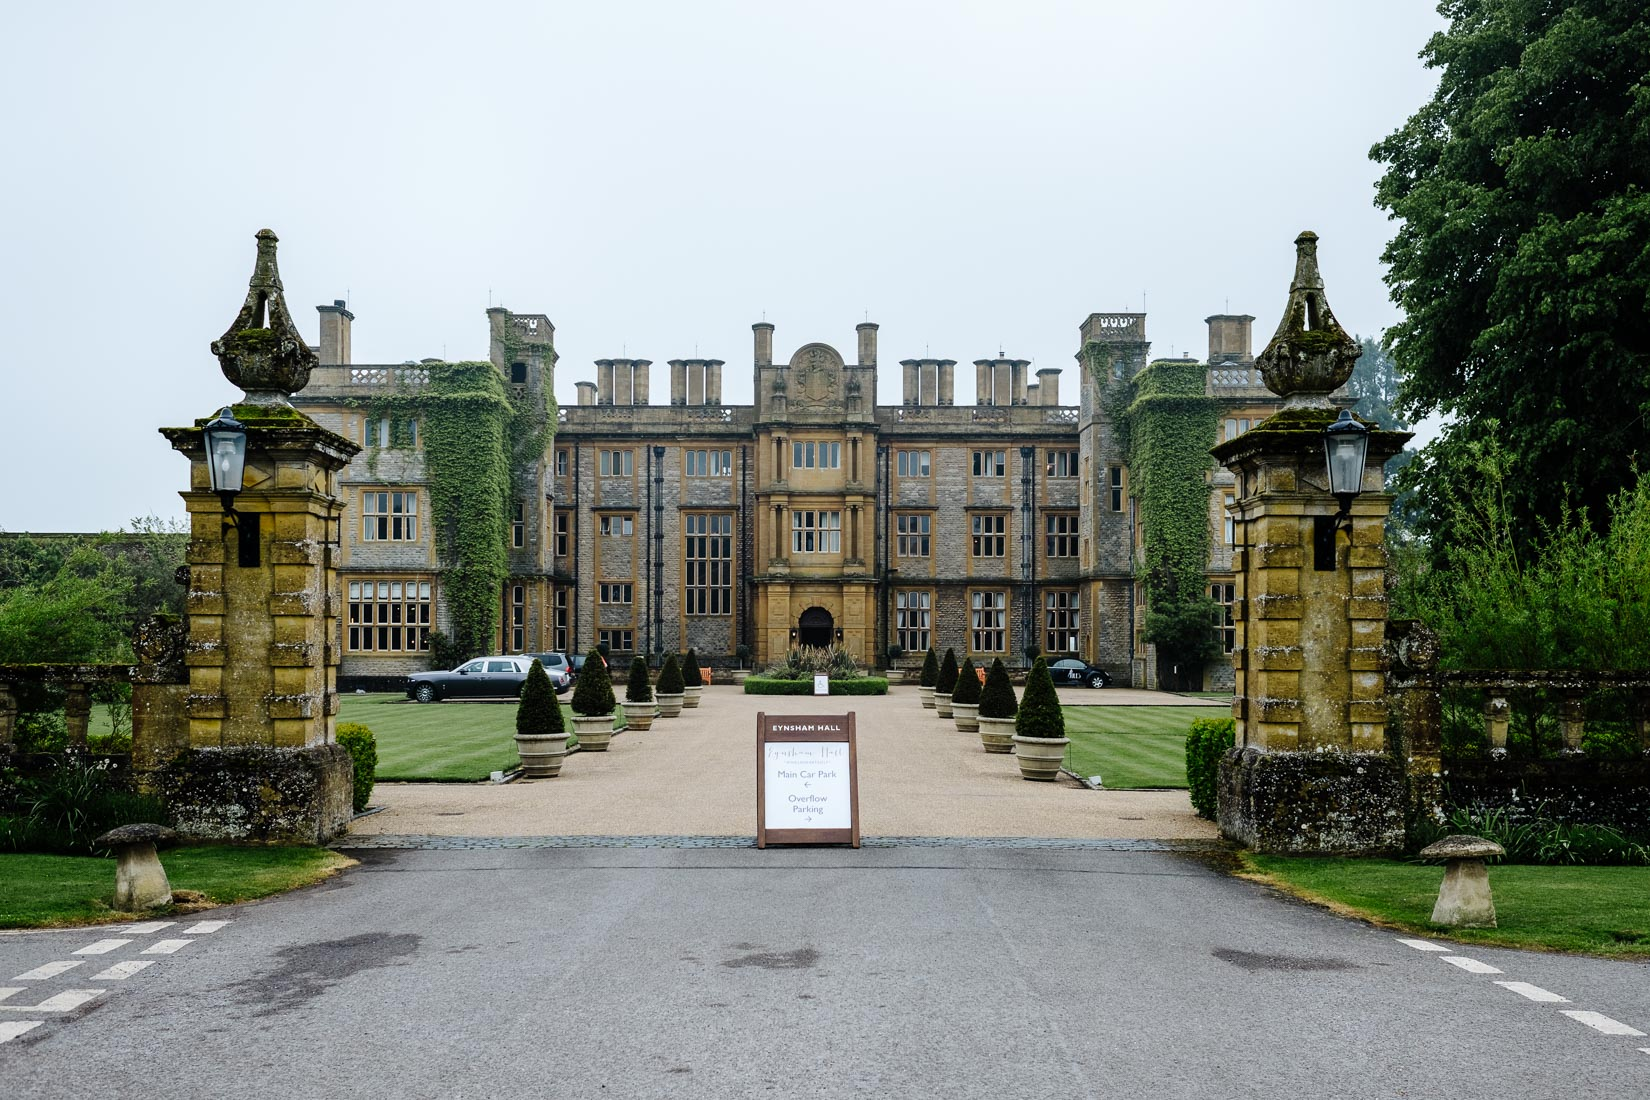 Eynsham Hall, we will be attending the Guides for Brides Wedding Fair here on Jan 13th.